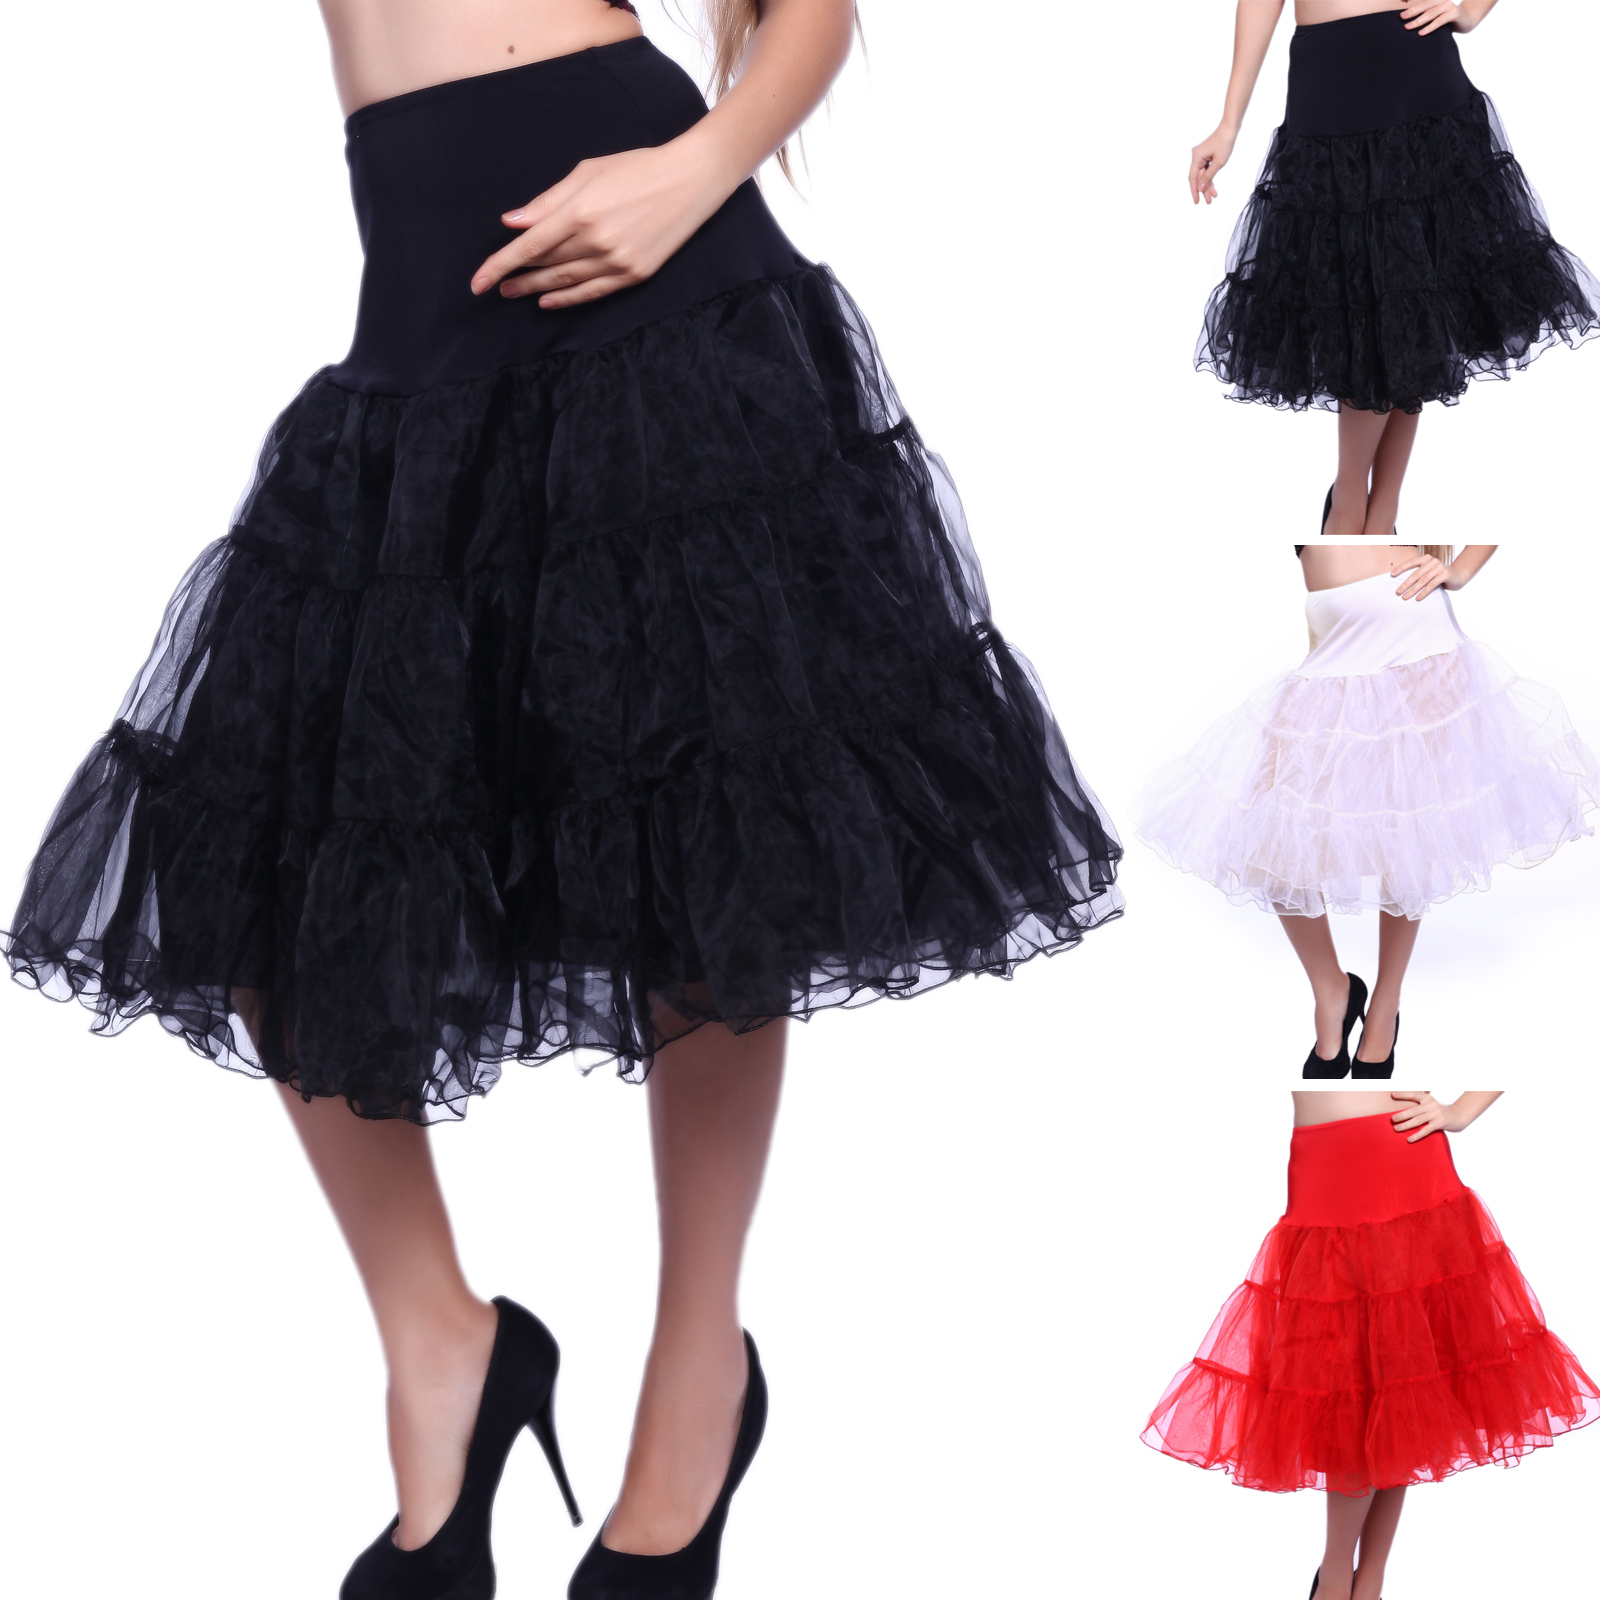 tutu jupe jupon tulle froufrou 2 couche leotard ballet danse femme costume m l ebay. Black Bedroom Furniture Sets. Home Design Ideas